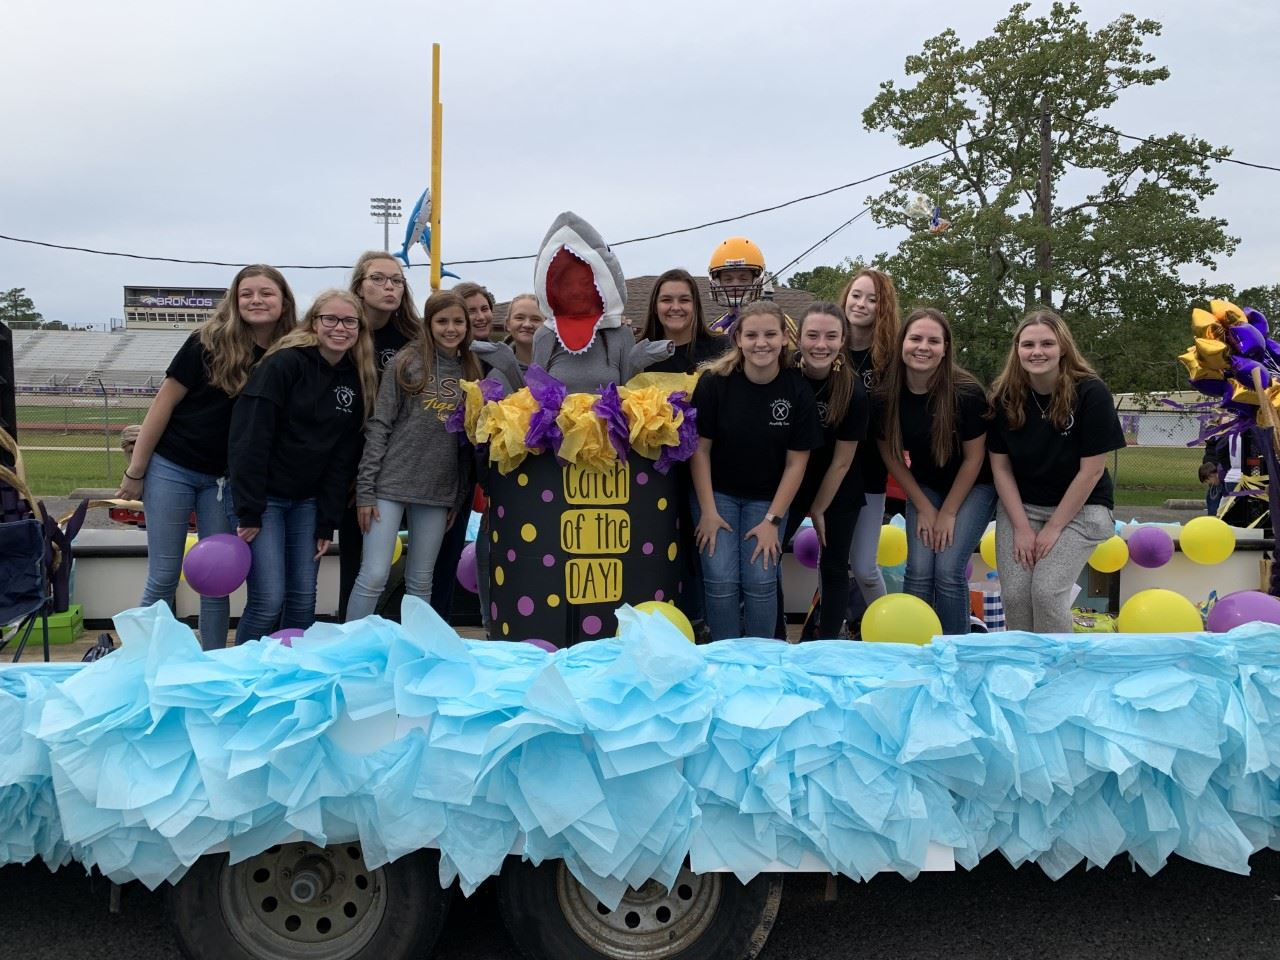 SHHS Hospitality Team Wins 2019 Homecoming School Float Competition